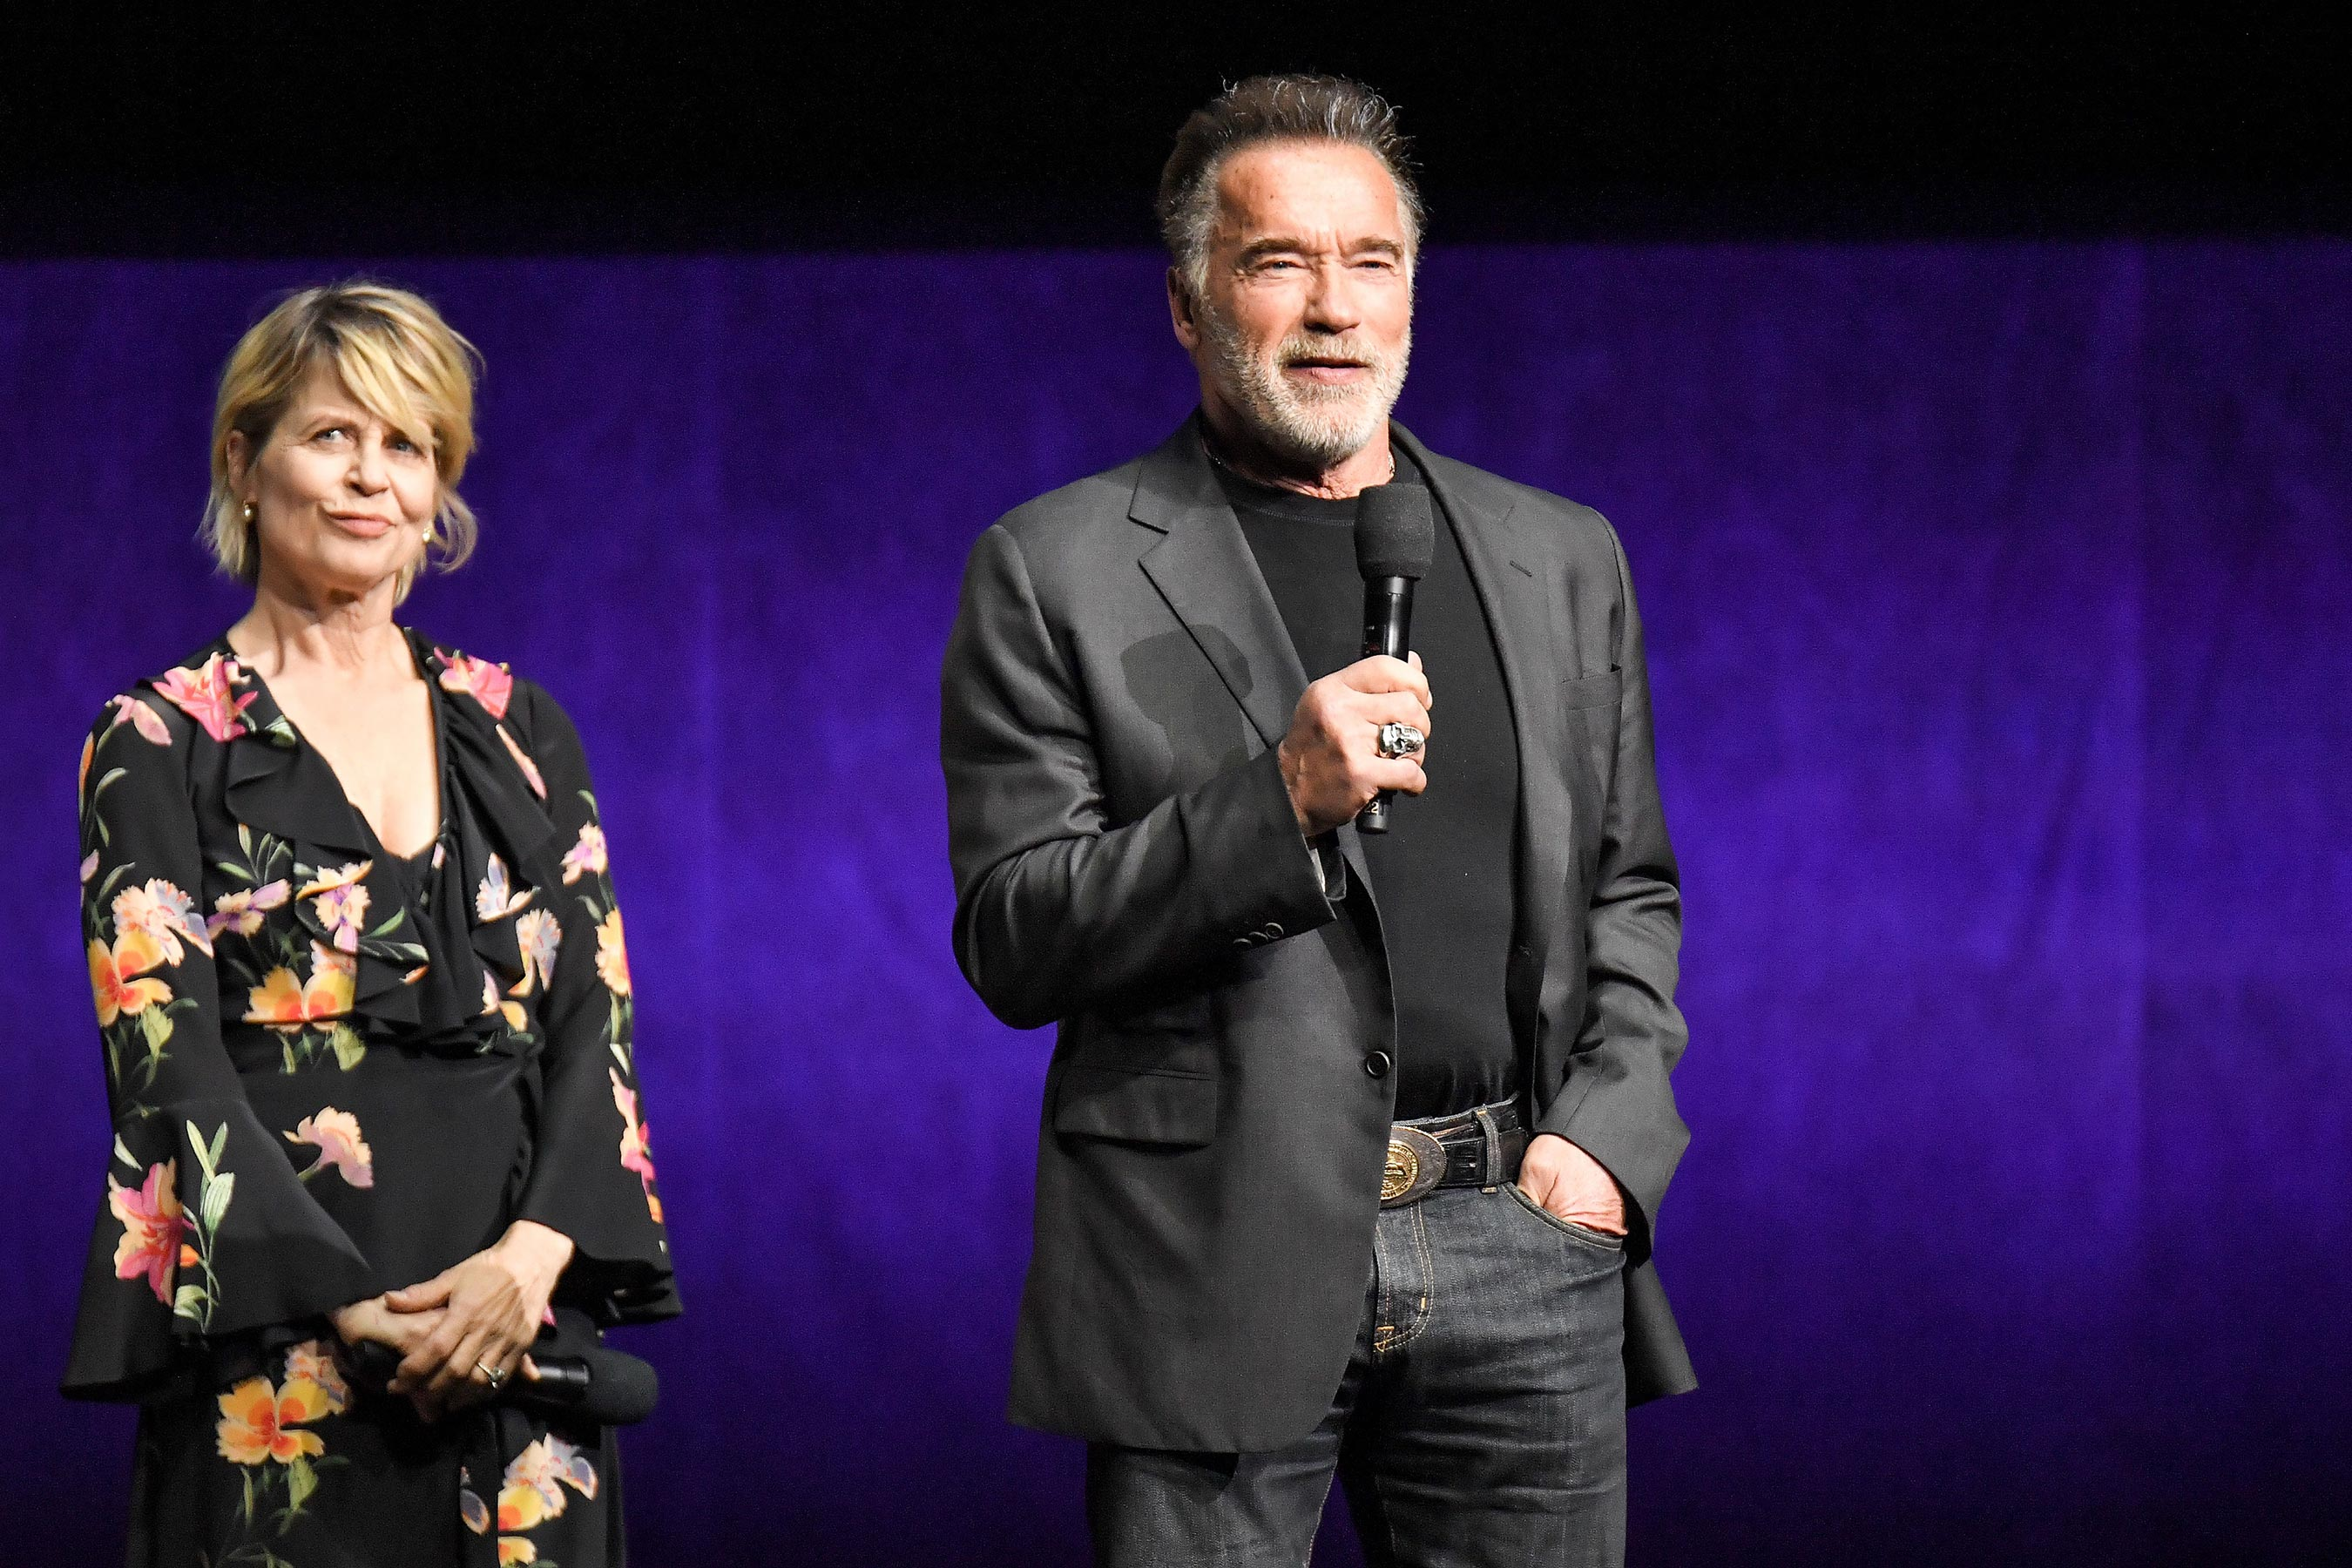 Linda Hamilton with Arnold Schwarzenegger at CinemaCon 2019.